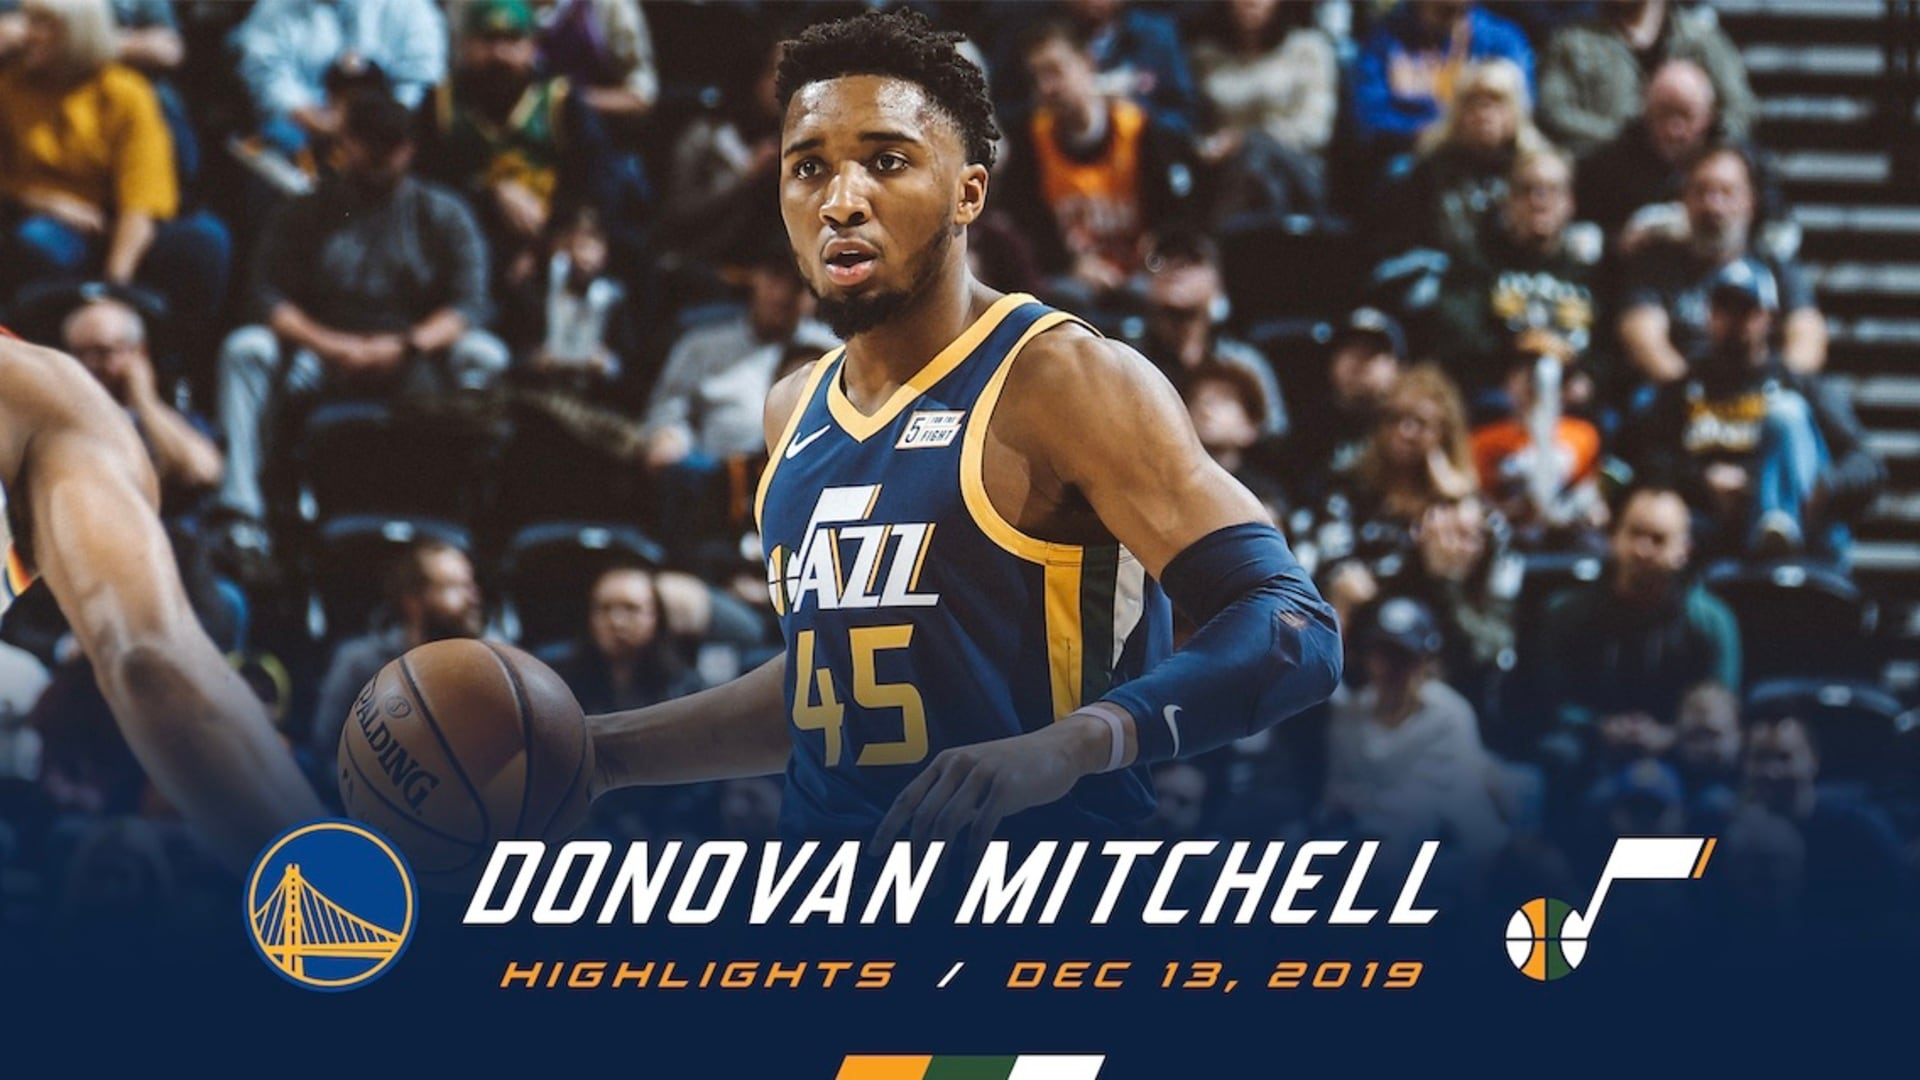 Highlights: Donovan Mitchell — 28 points, 4 rebounds